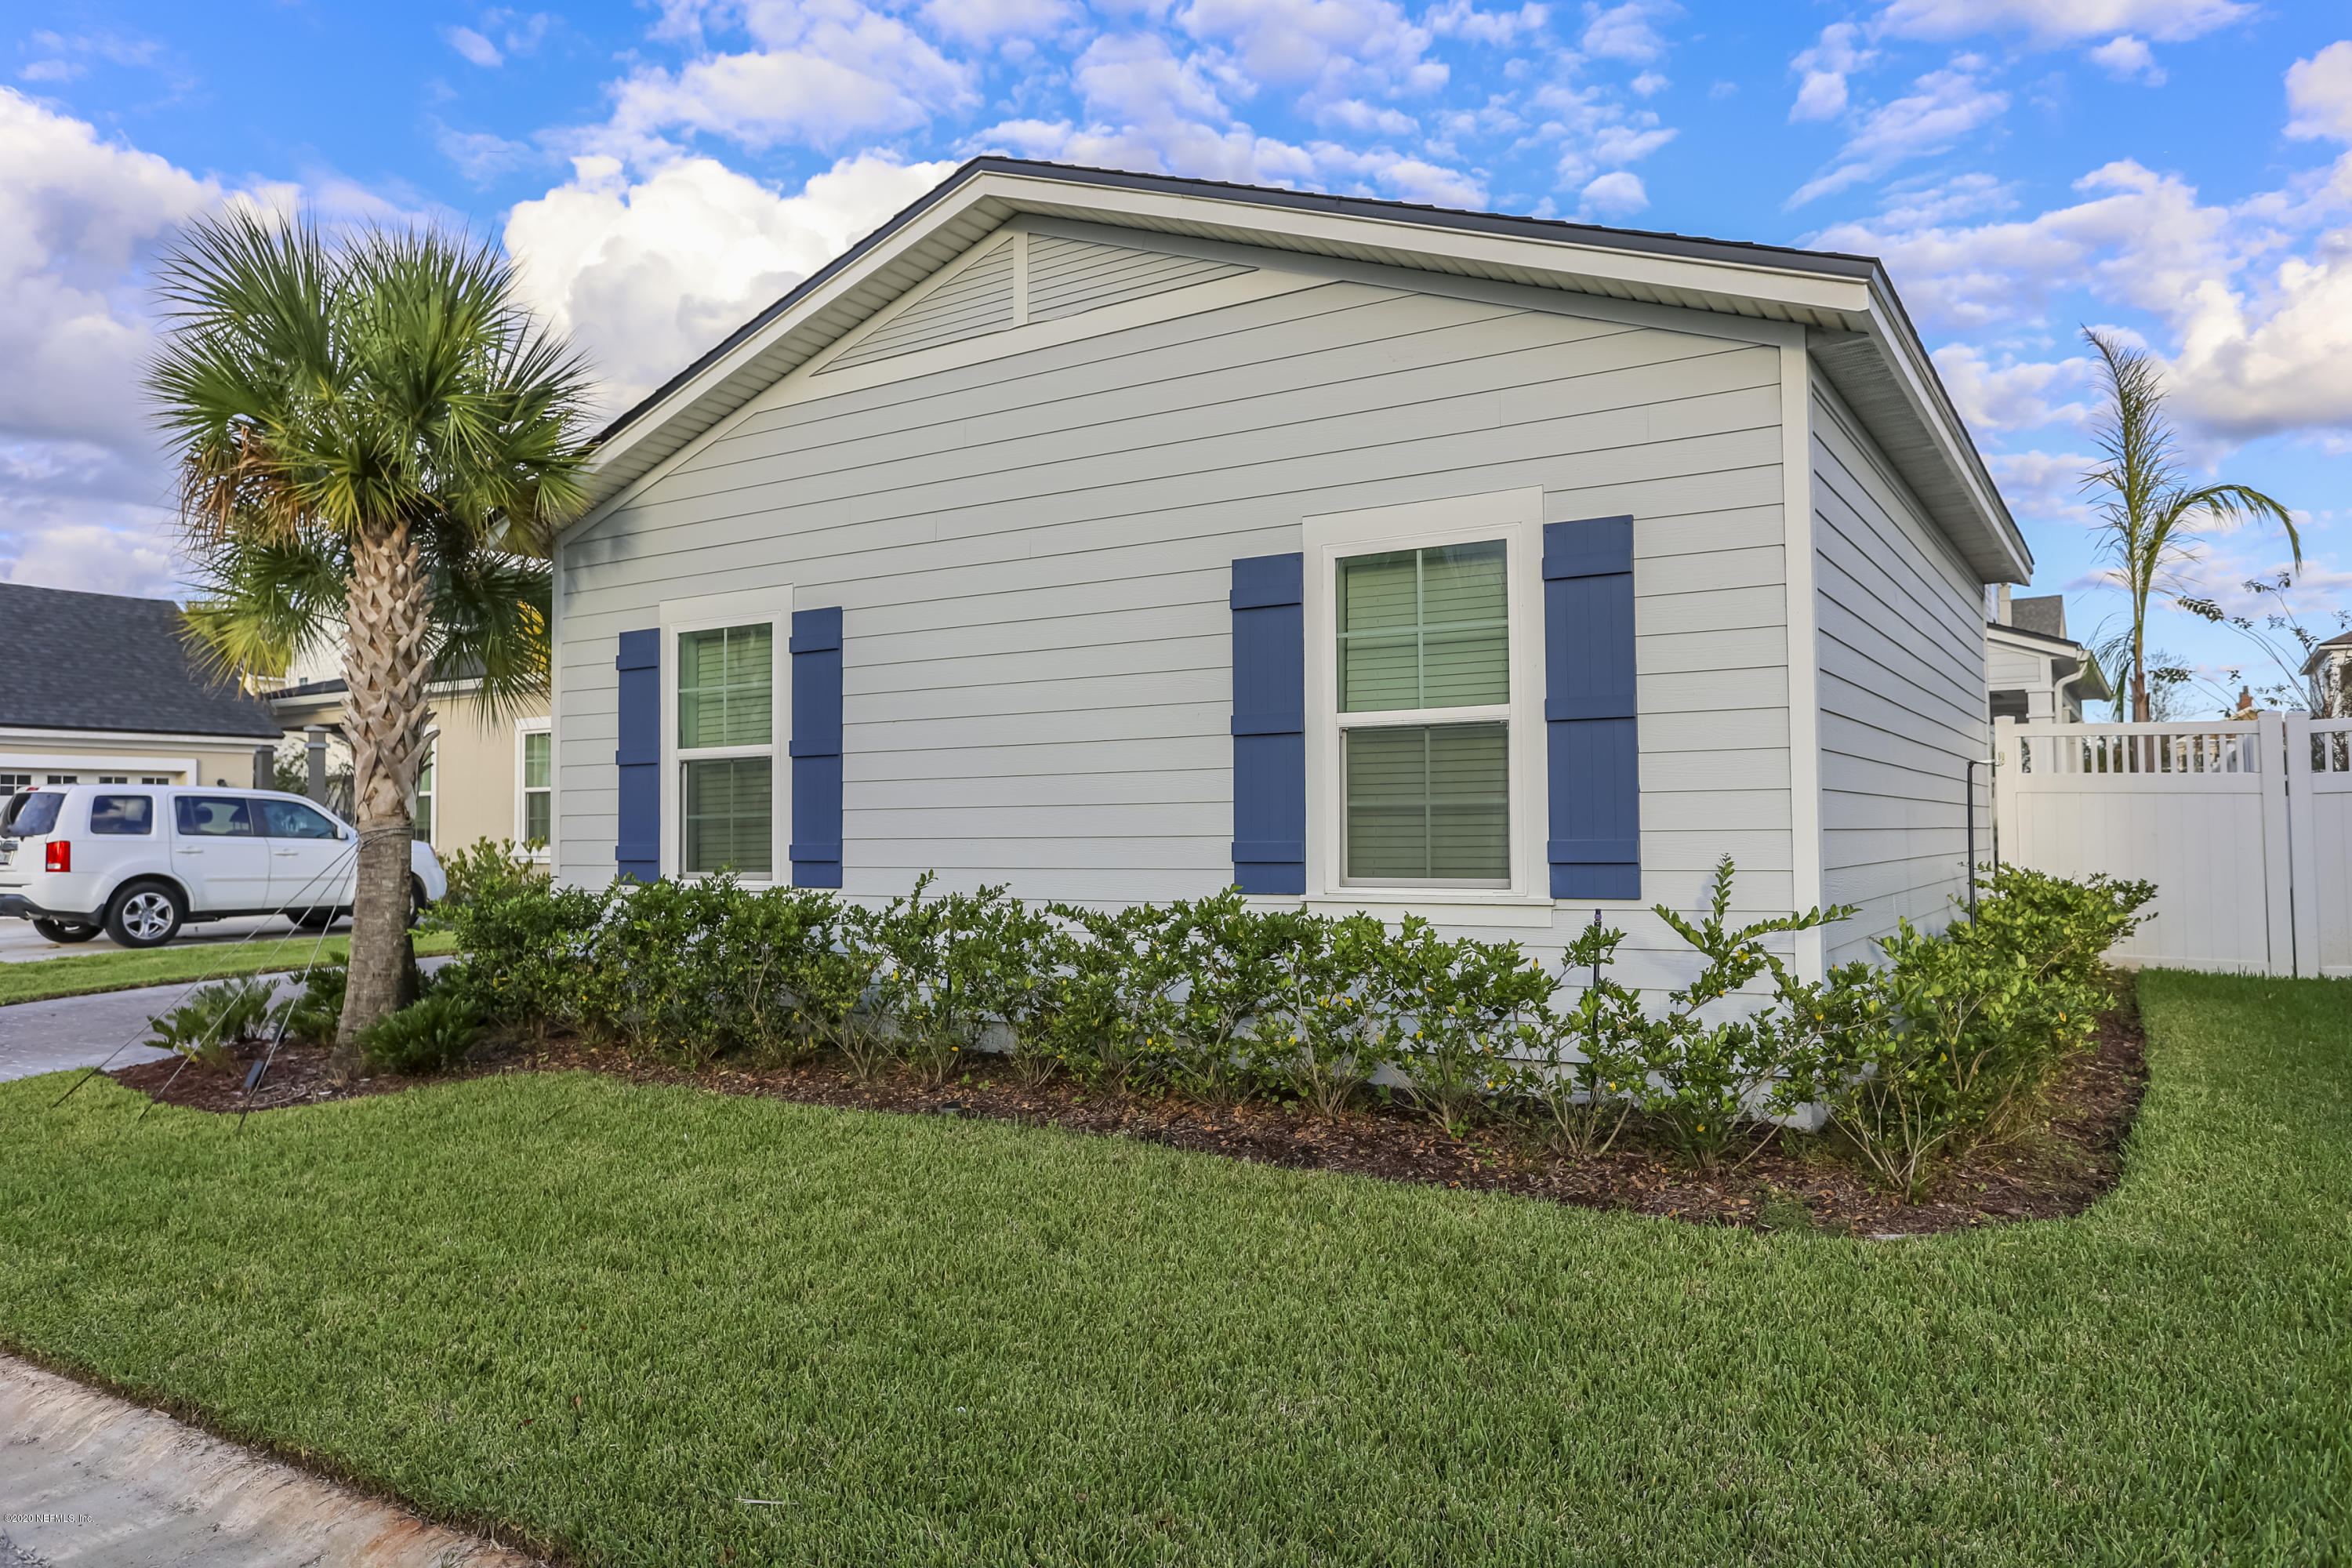 68 FREMONT, ST AUGUSTINE, FLORIDA 32095, 4 Bedrooms Bedrooms, ,2 BathroomsBathrooms,Residential,For sale,FREMONT,1081786